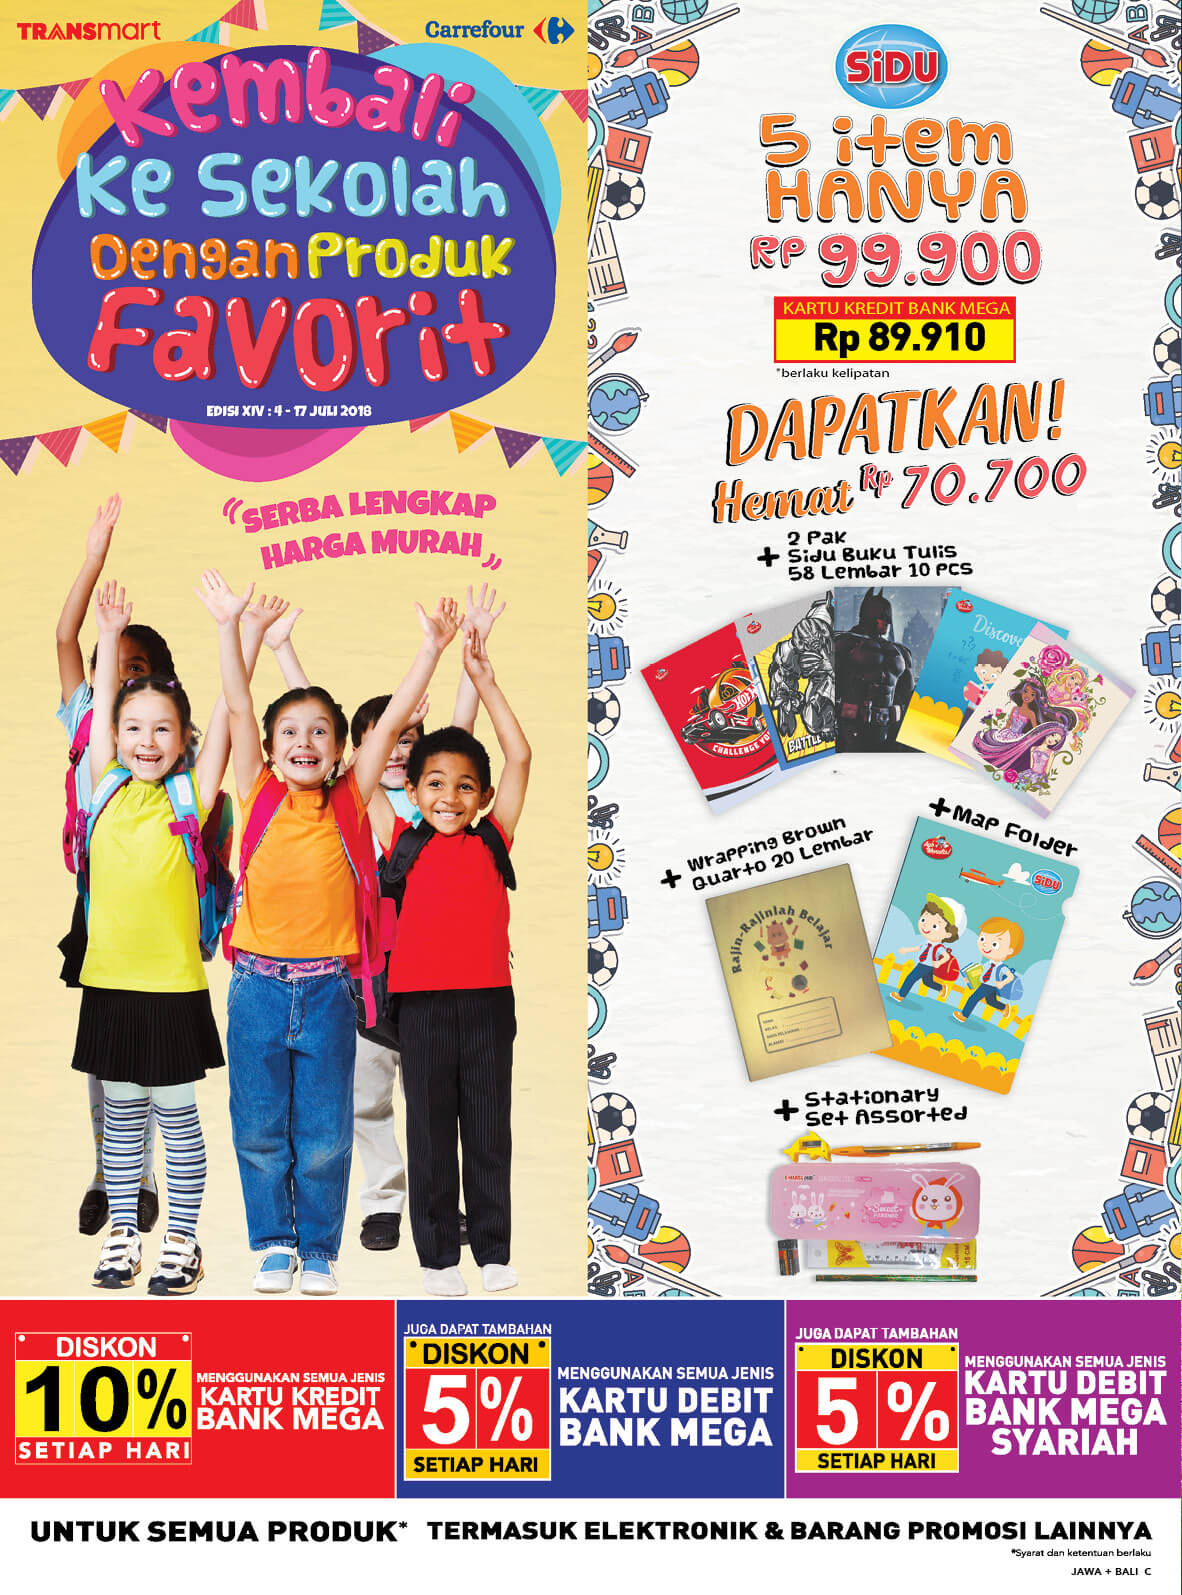 Katalog Carrefour 6 Jul 17 Voucher Carefur